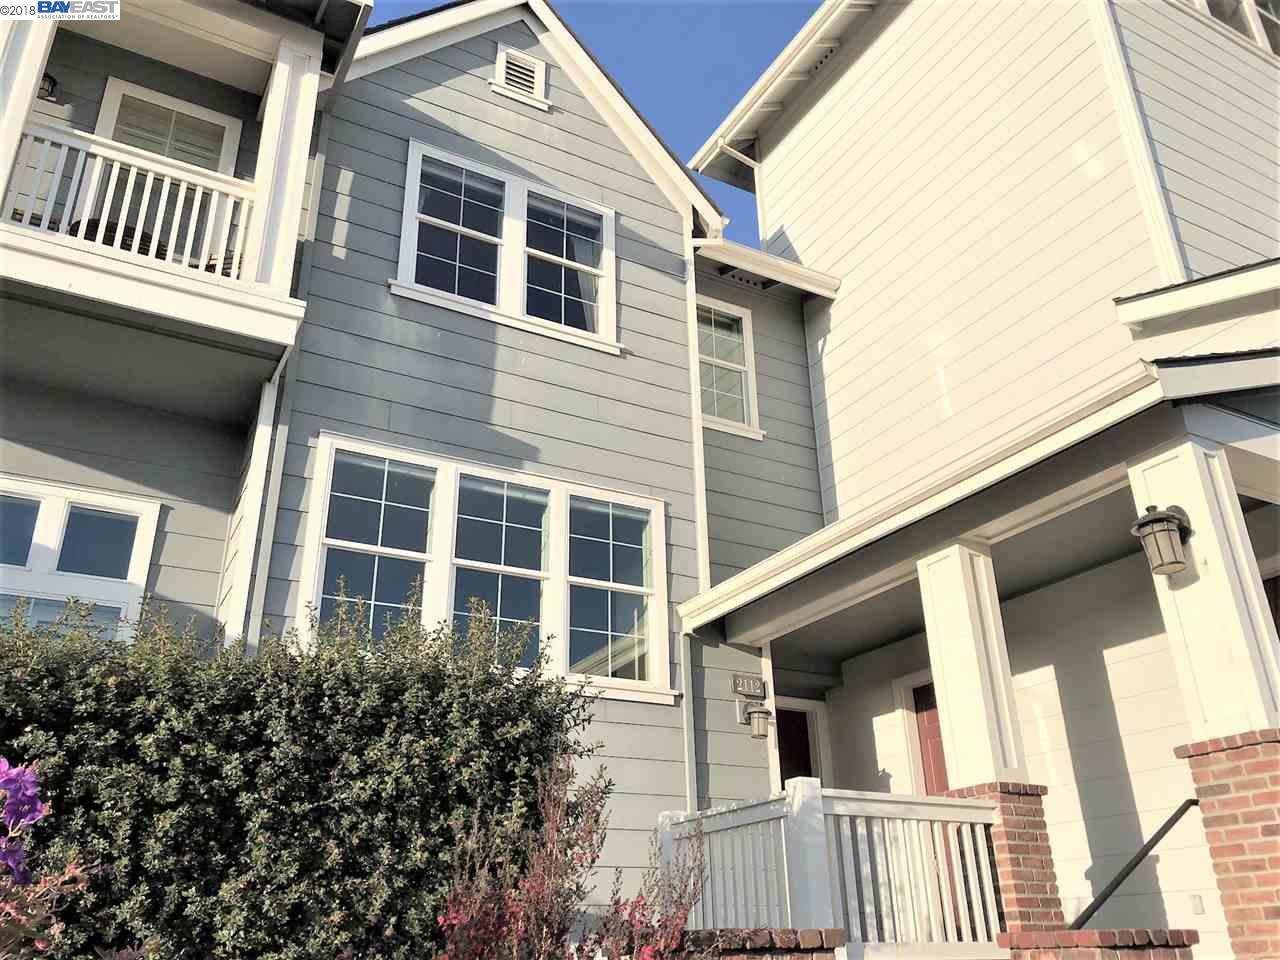 2112 NORTHSHORE DR, RICHMOND, CA 94804